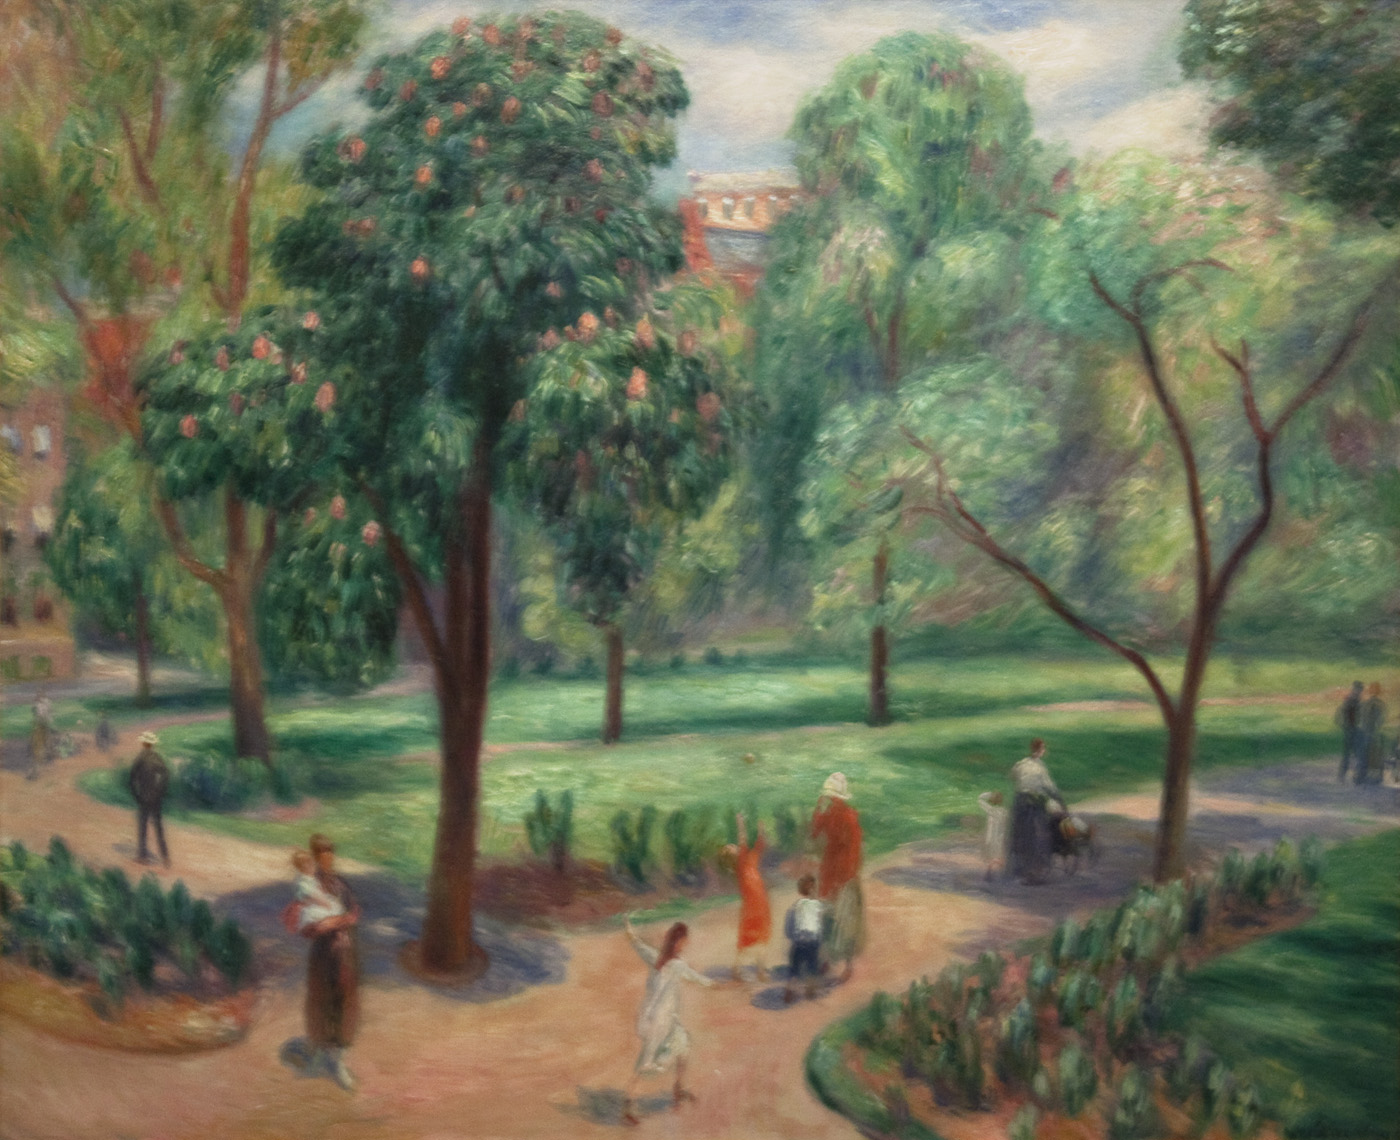 source: https://i1.wp.com/upload.wikimedia.org/wikipedia/commons/f/f8/WLA_hmaa_William_Glackens_Horse_Chestnut_Tree.jpg